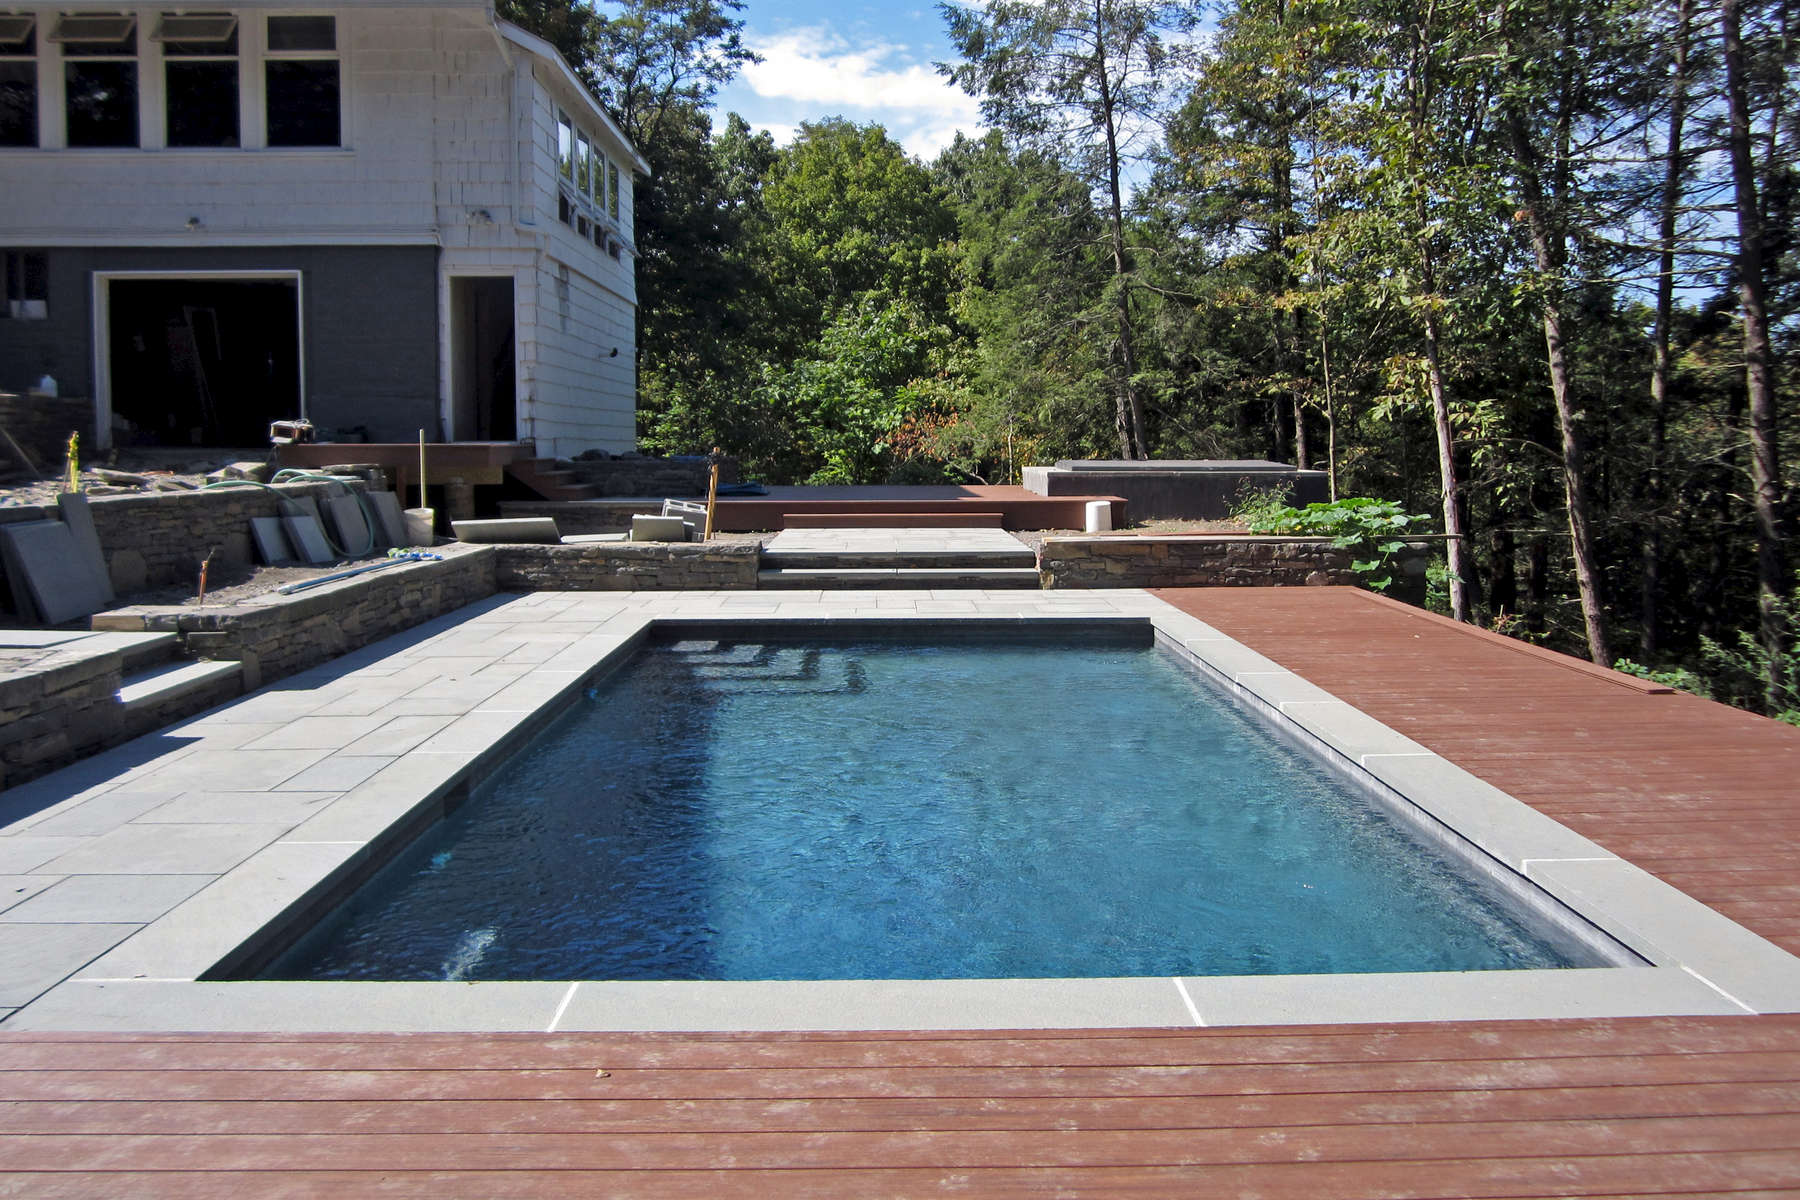 The outdoor rooms are defined by stonewalls, bluestone patios, wood decks and future garden plantings.